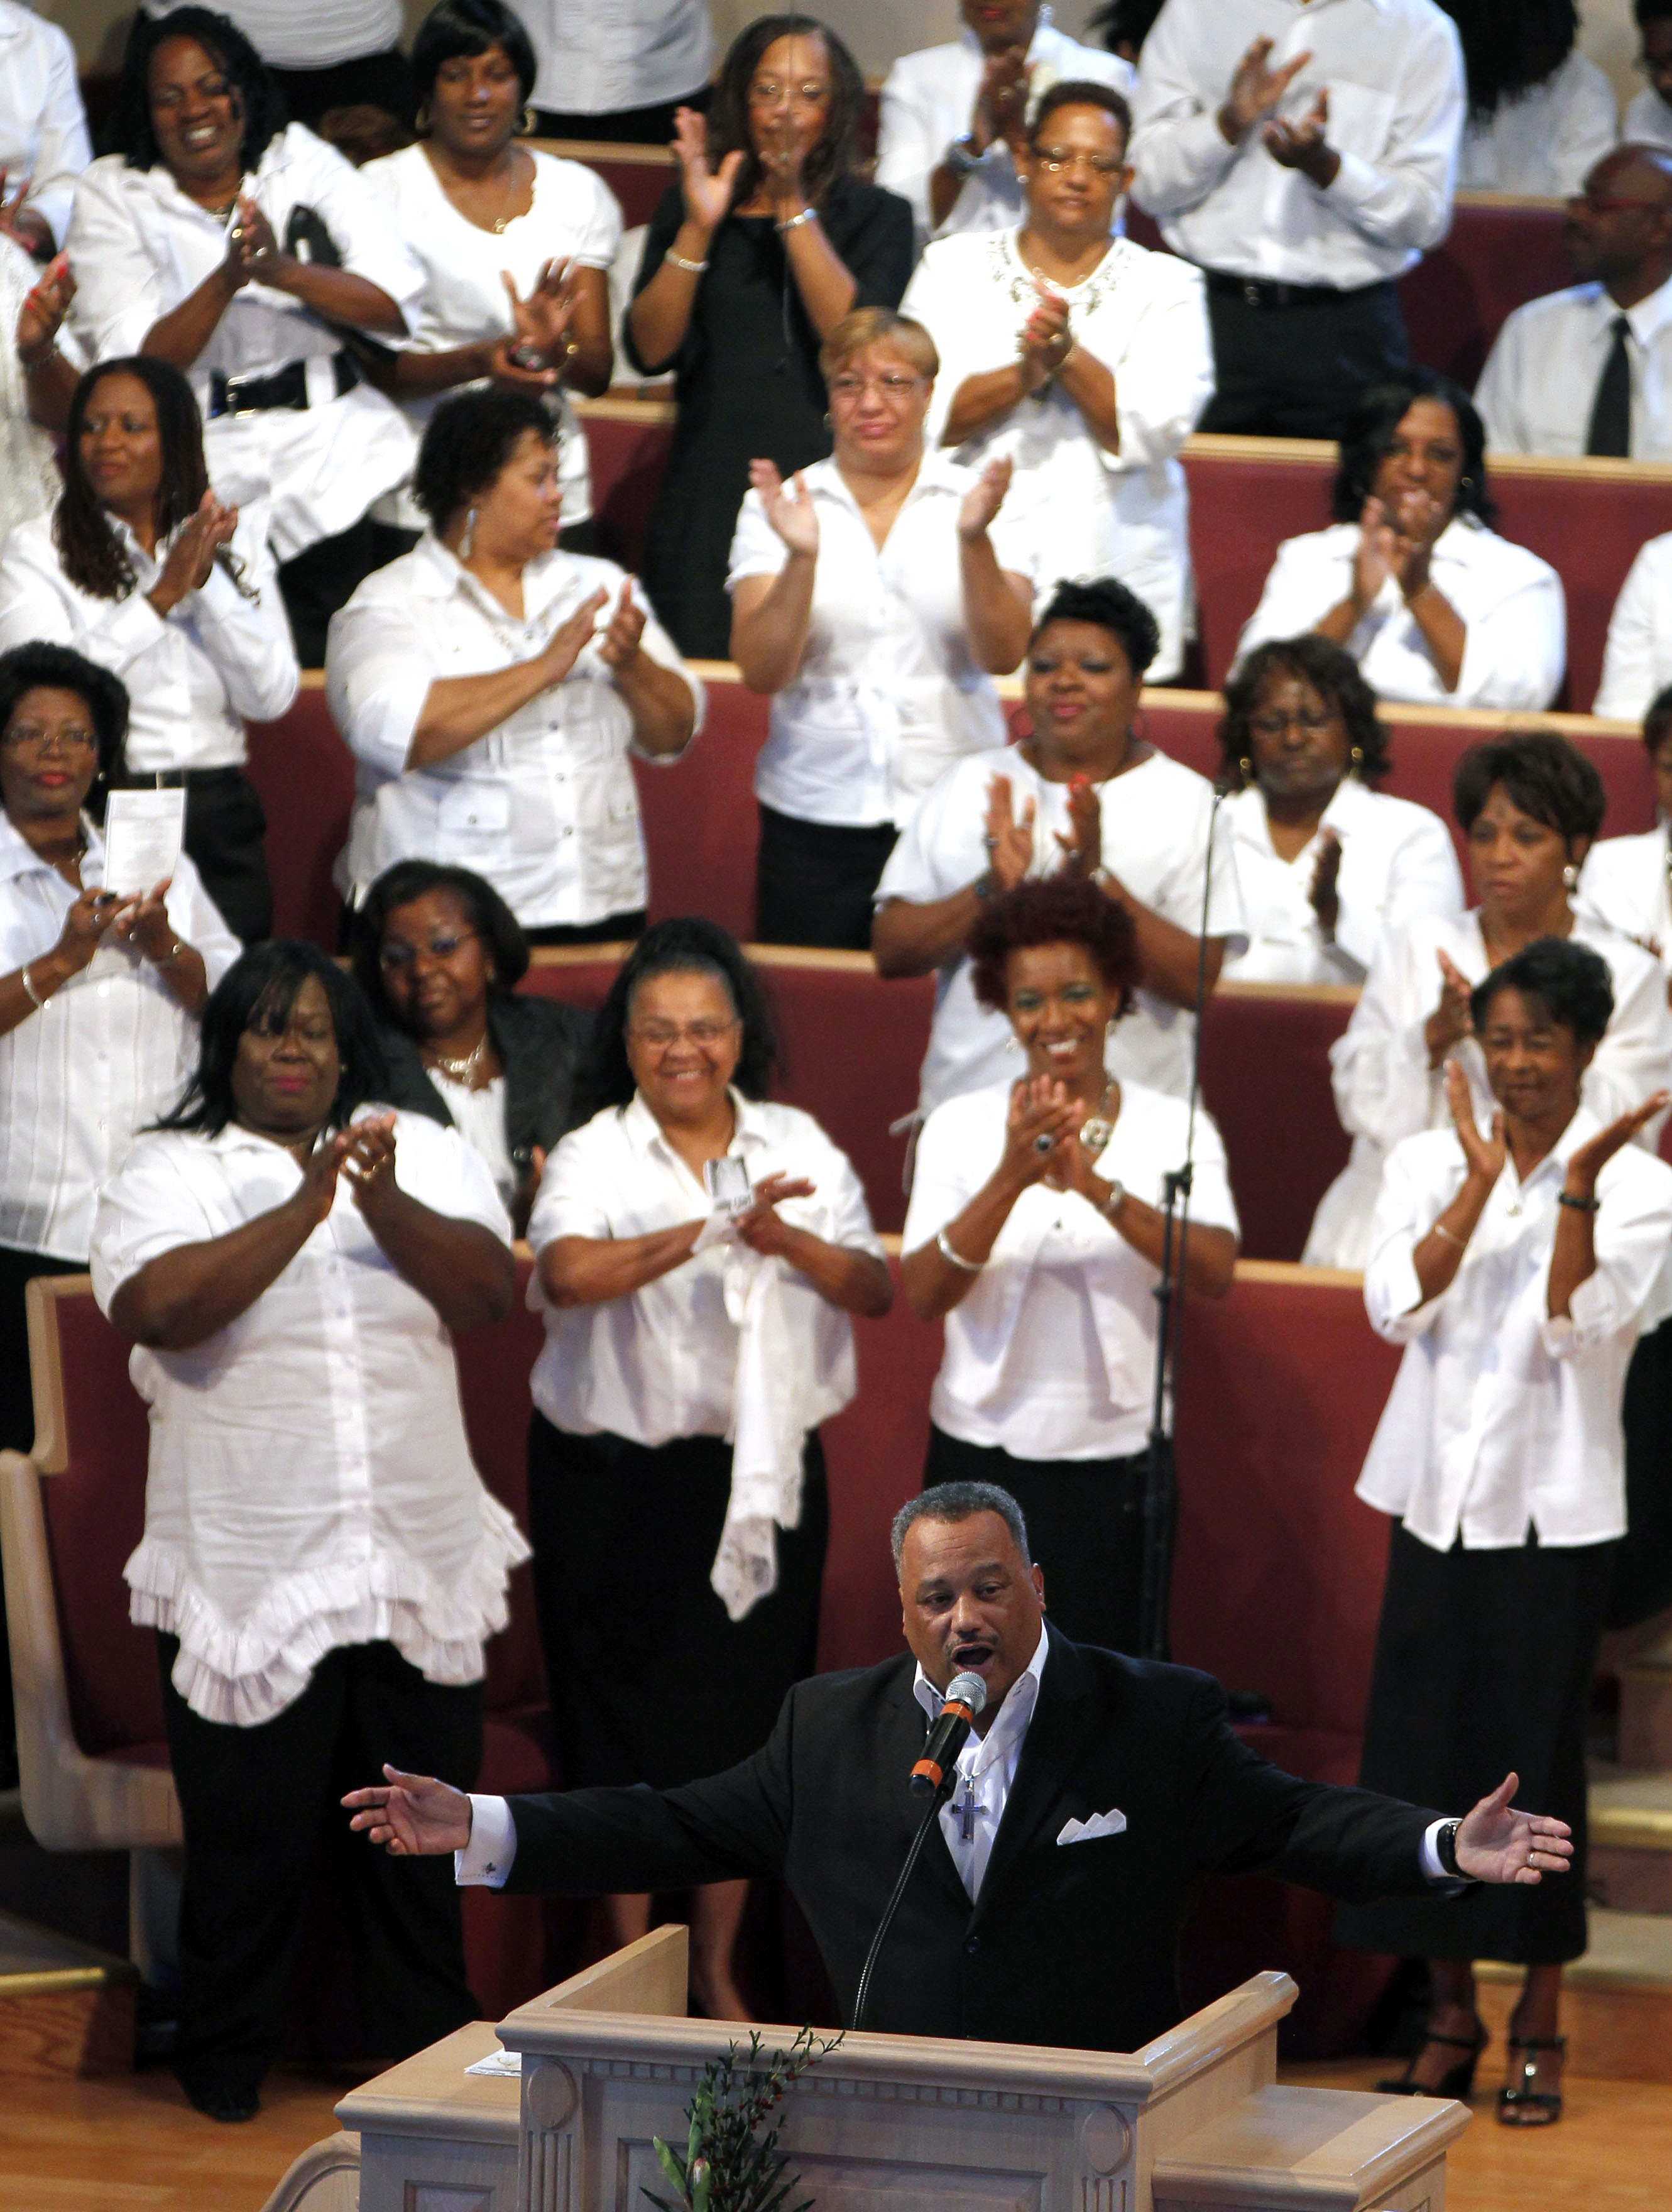 The Rev. Fred Luter is running unopposed for the presidency of the Southern Baptist Convention. Here, he delivers a sermon during Sunday services at Franklin Avenue Baptist Church in New Orleans.